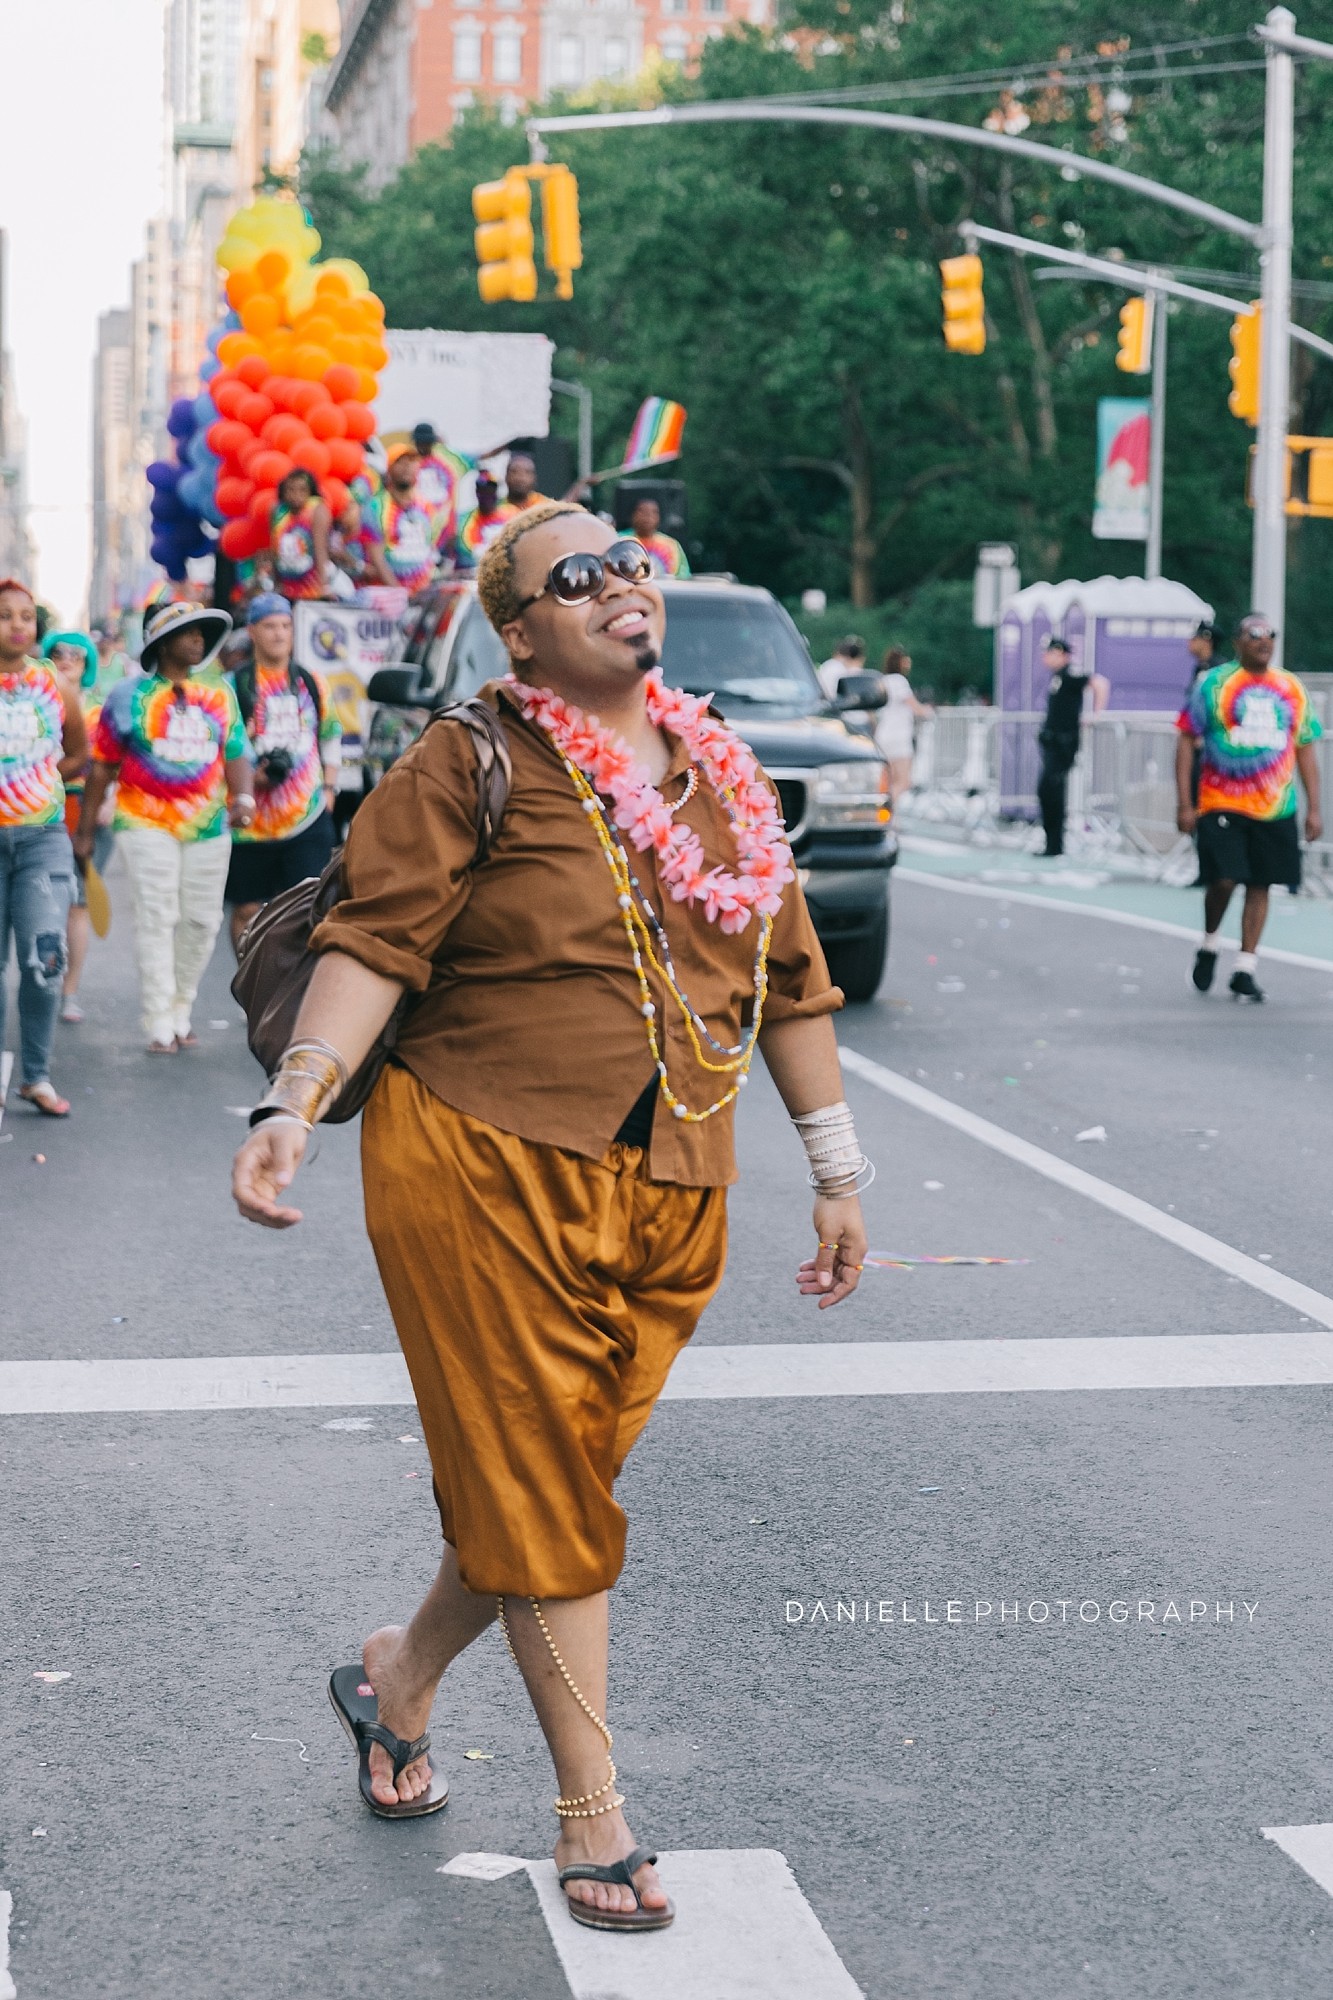 Gay_Pride_2017_Parade_New_York_NY34.jpg